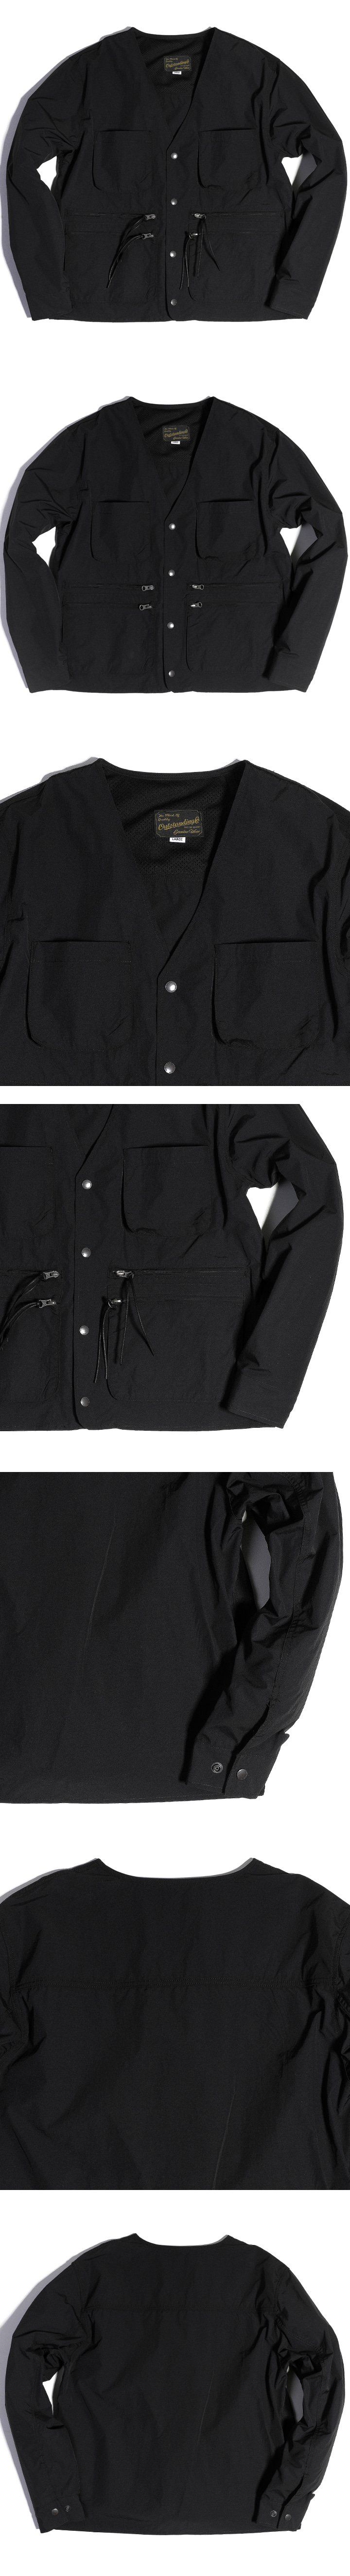 아웃스탠딩(OUTSTANDING) NOCOLLAR HUNTING JACKET [BLACK]